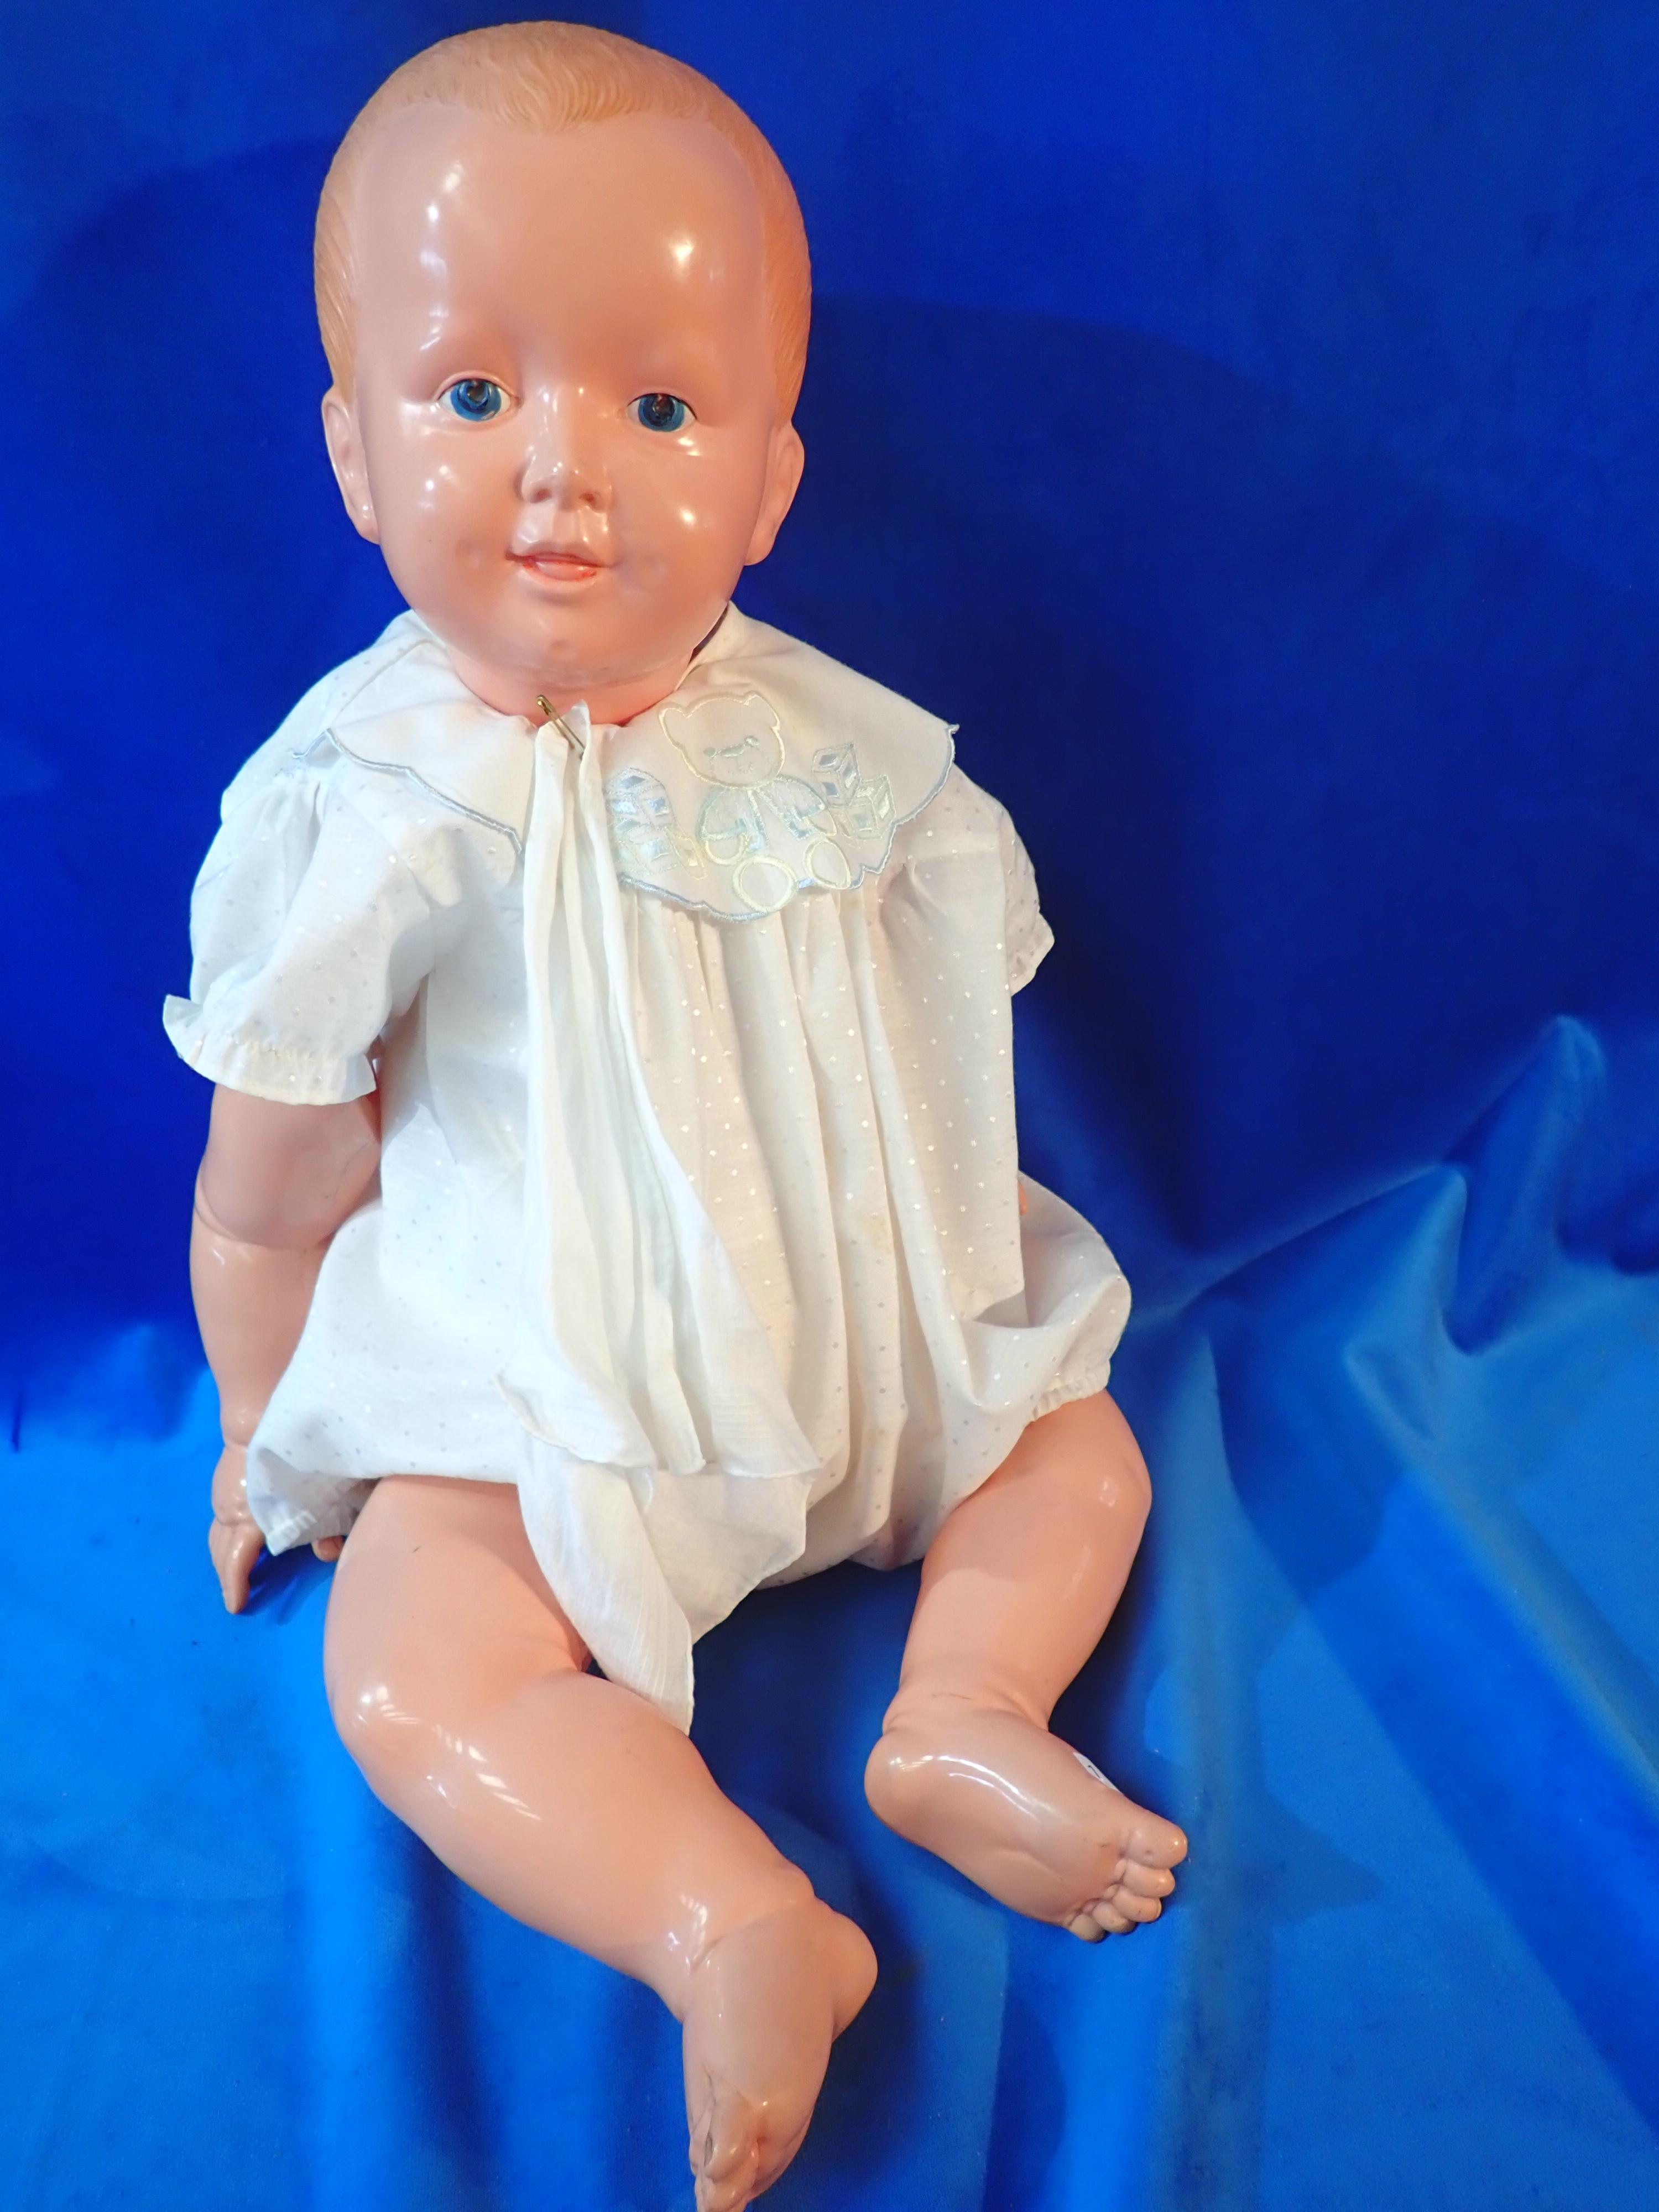 """20"""" LARGE CELLULOID DOLL IN BABY SUIT - MAKERS MARK K IN CLOVER LEAF - NEEDS RESTRINGING - OLD REPAIRS ON HAND"""